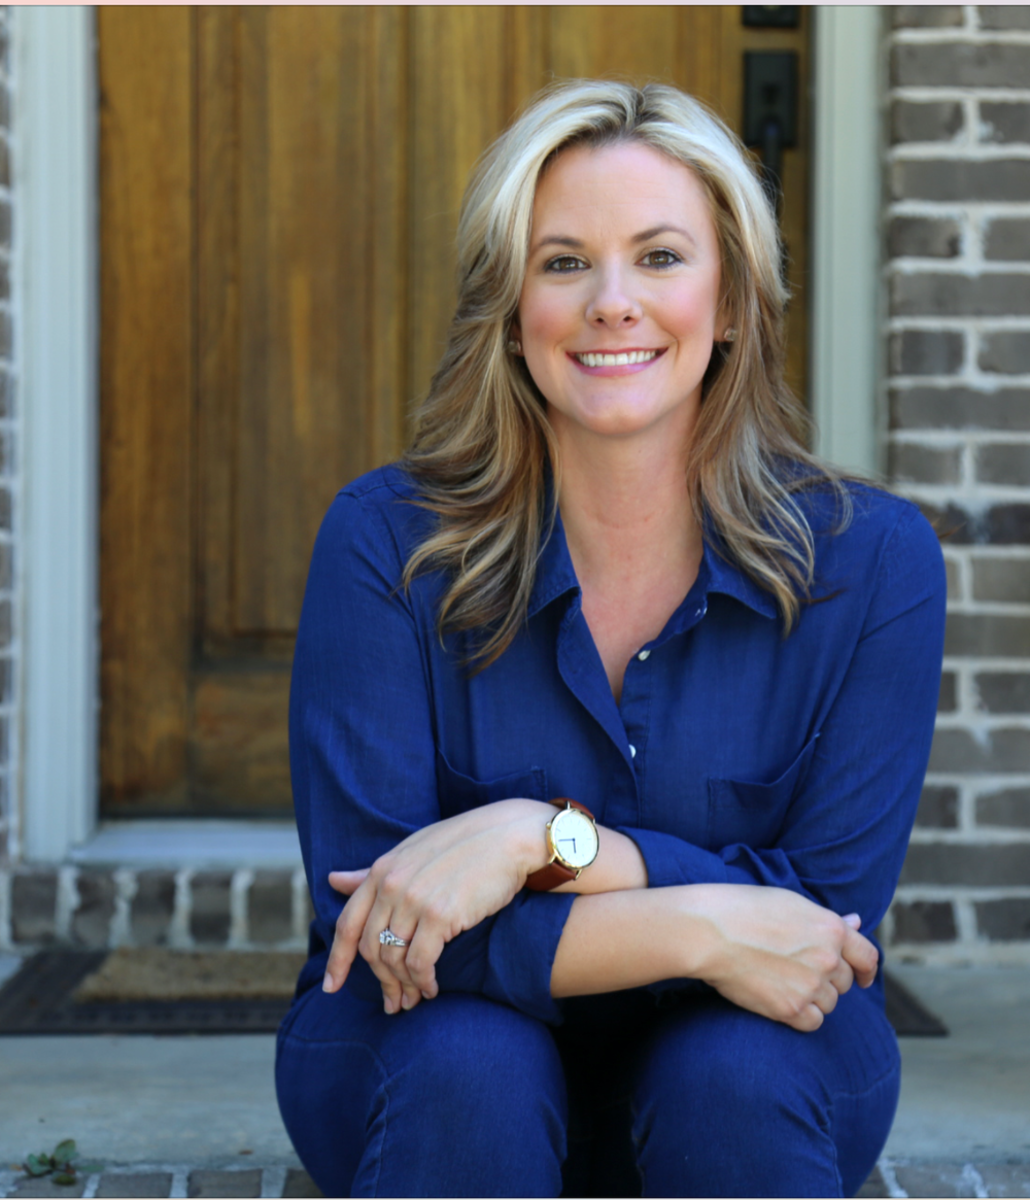 Tiffany has survived cancer and an uphill battle to bring her business from the ground up.